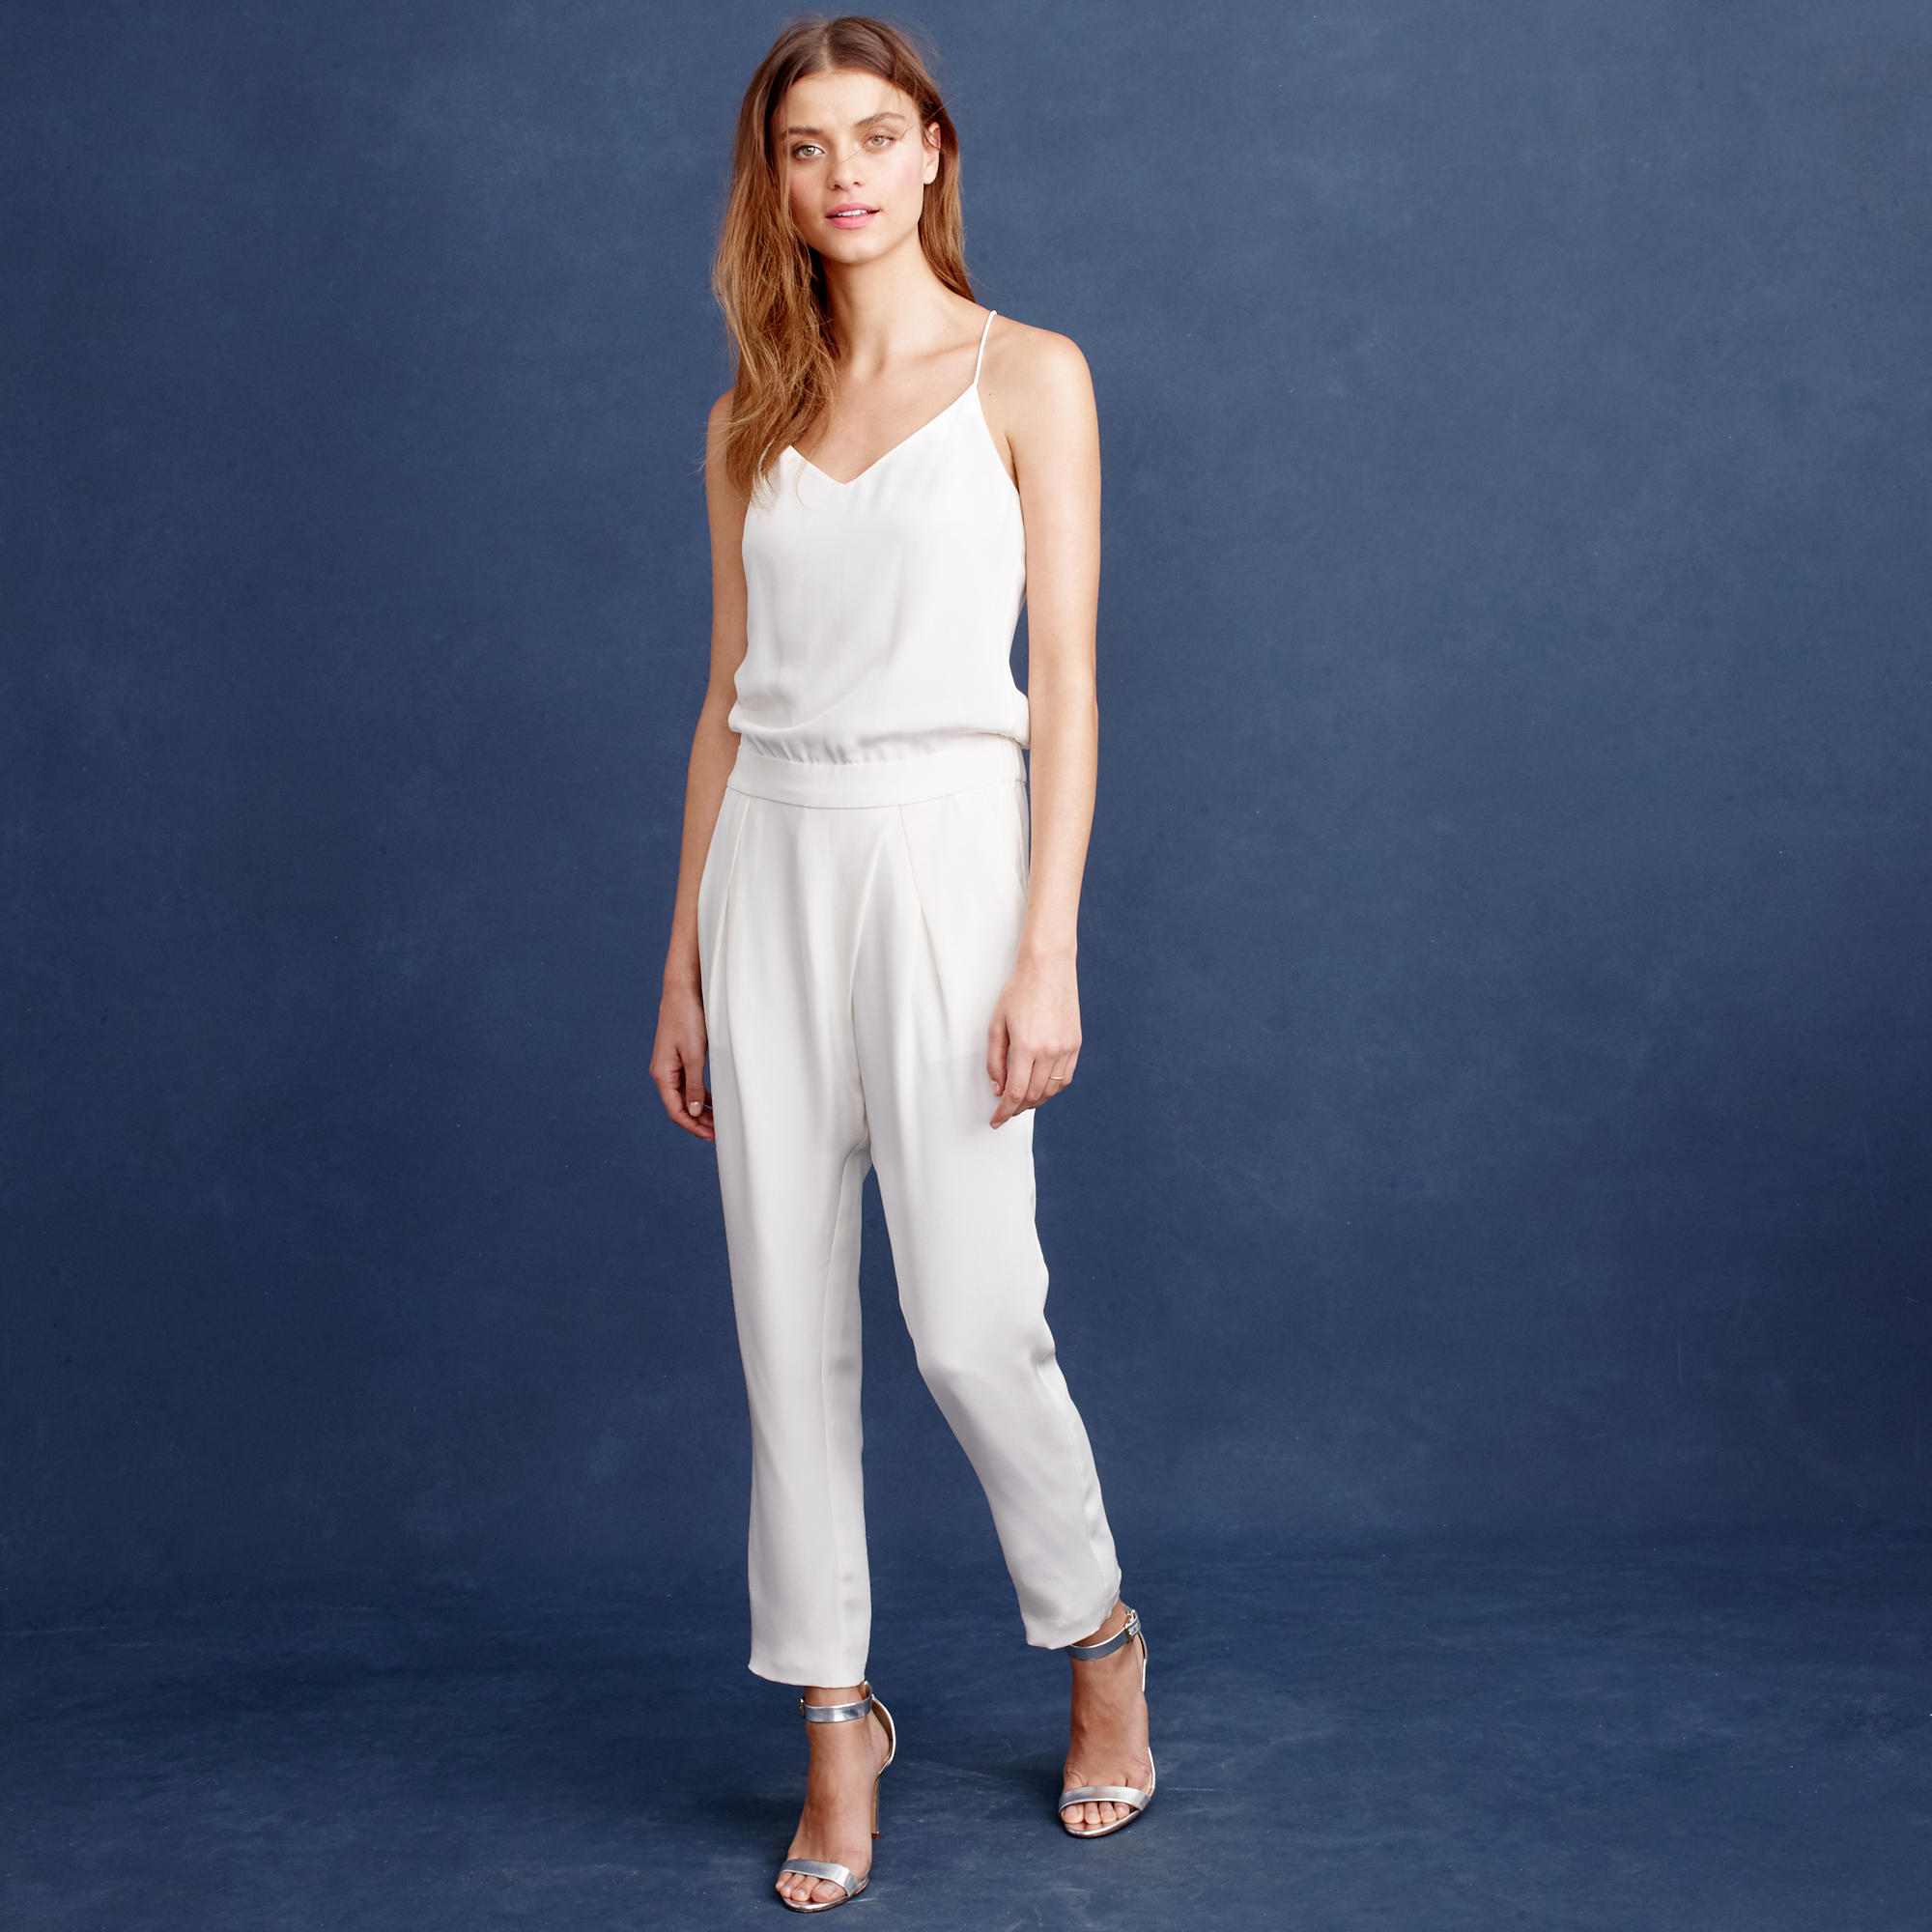 Jumpsuits To Wear To A Wedding: 11 Chic AND Affordable Wedding Jumpsuits